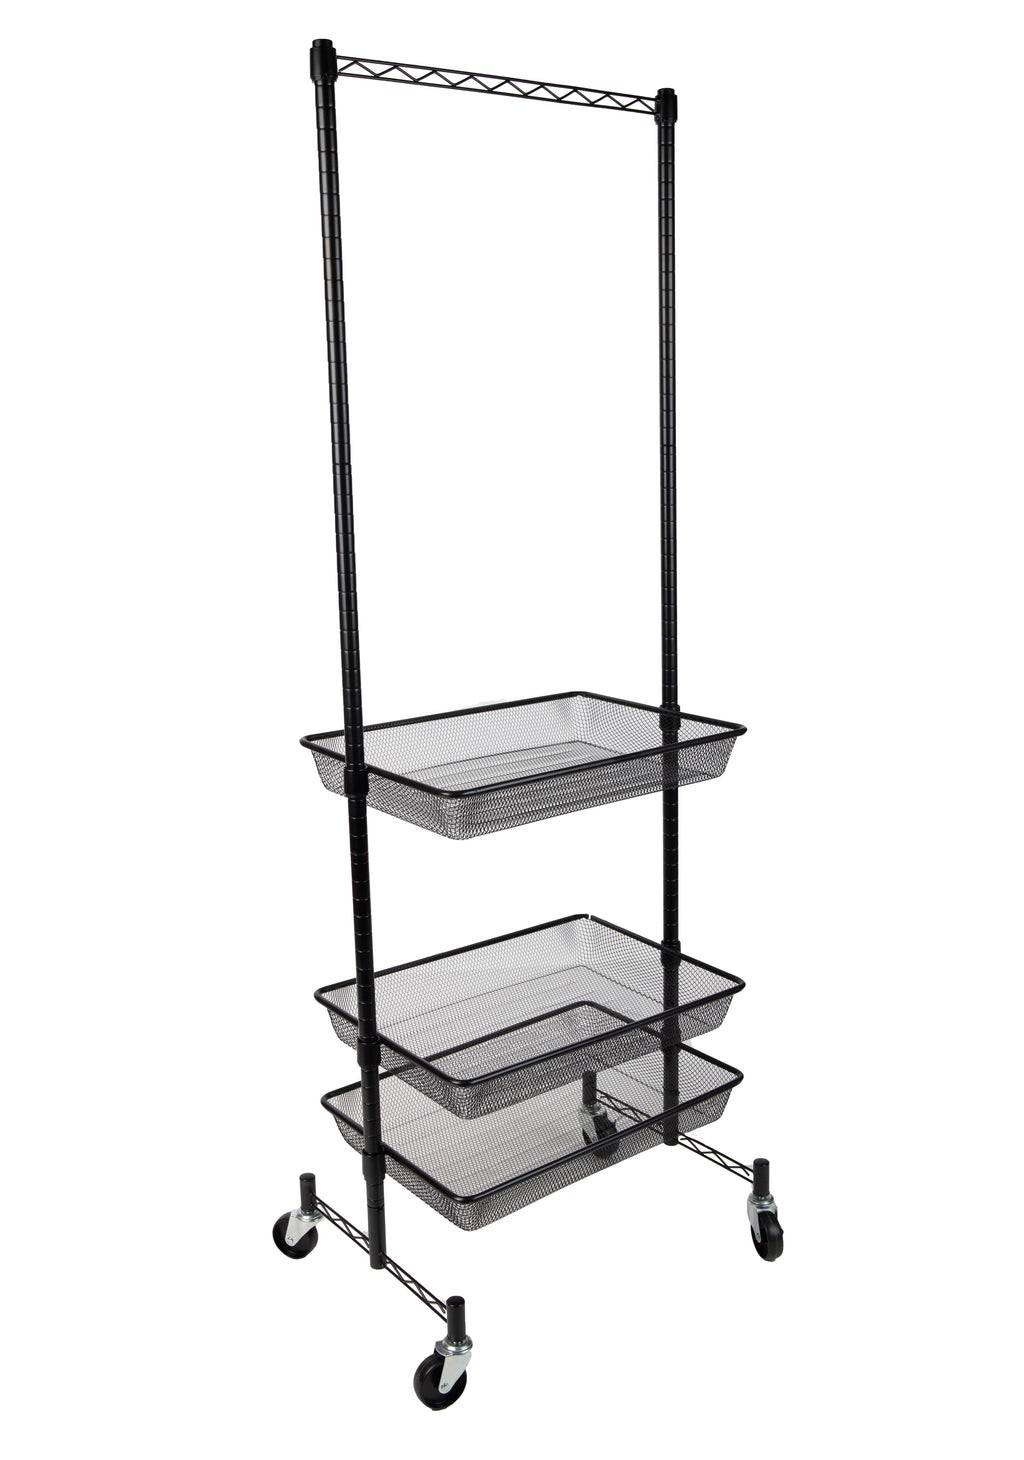 3 Basket Storage Rack